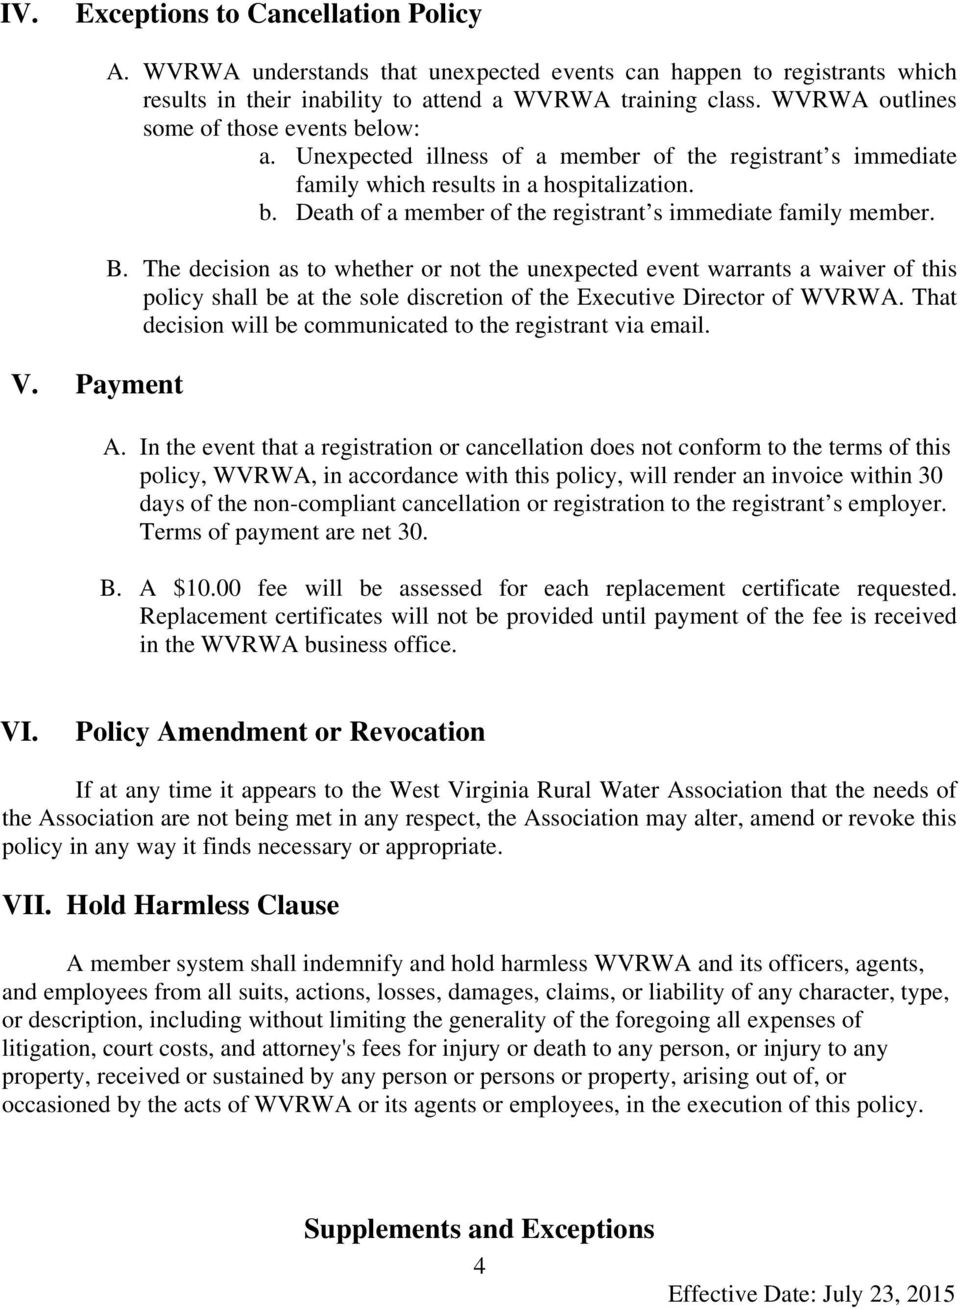 B. The decision as to whether or not the unexpected event warrants a waiver of this policy shall be at the sole discretion of the Executive Director of WVRWA.